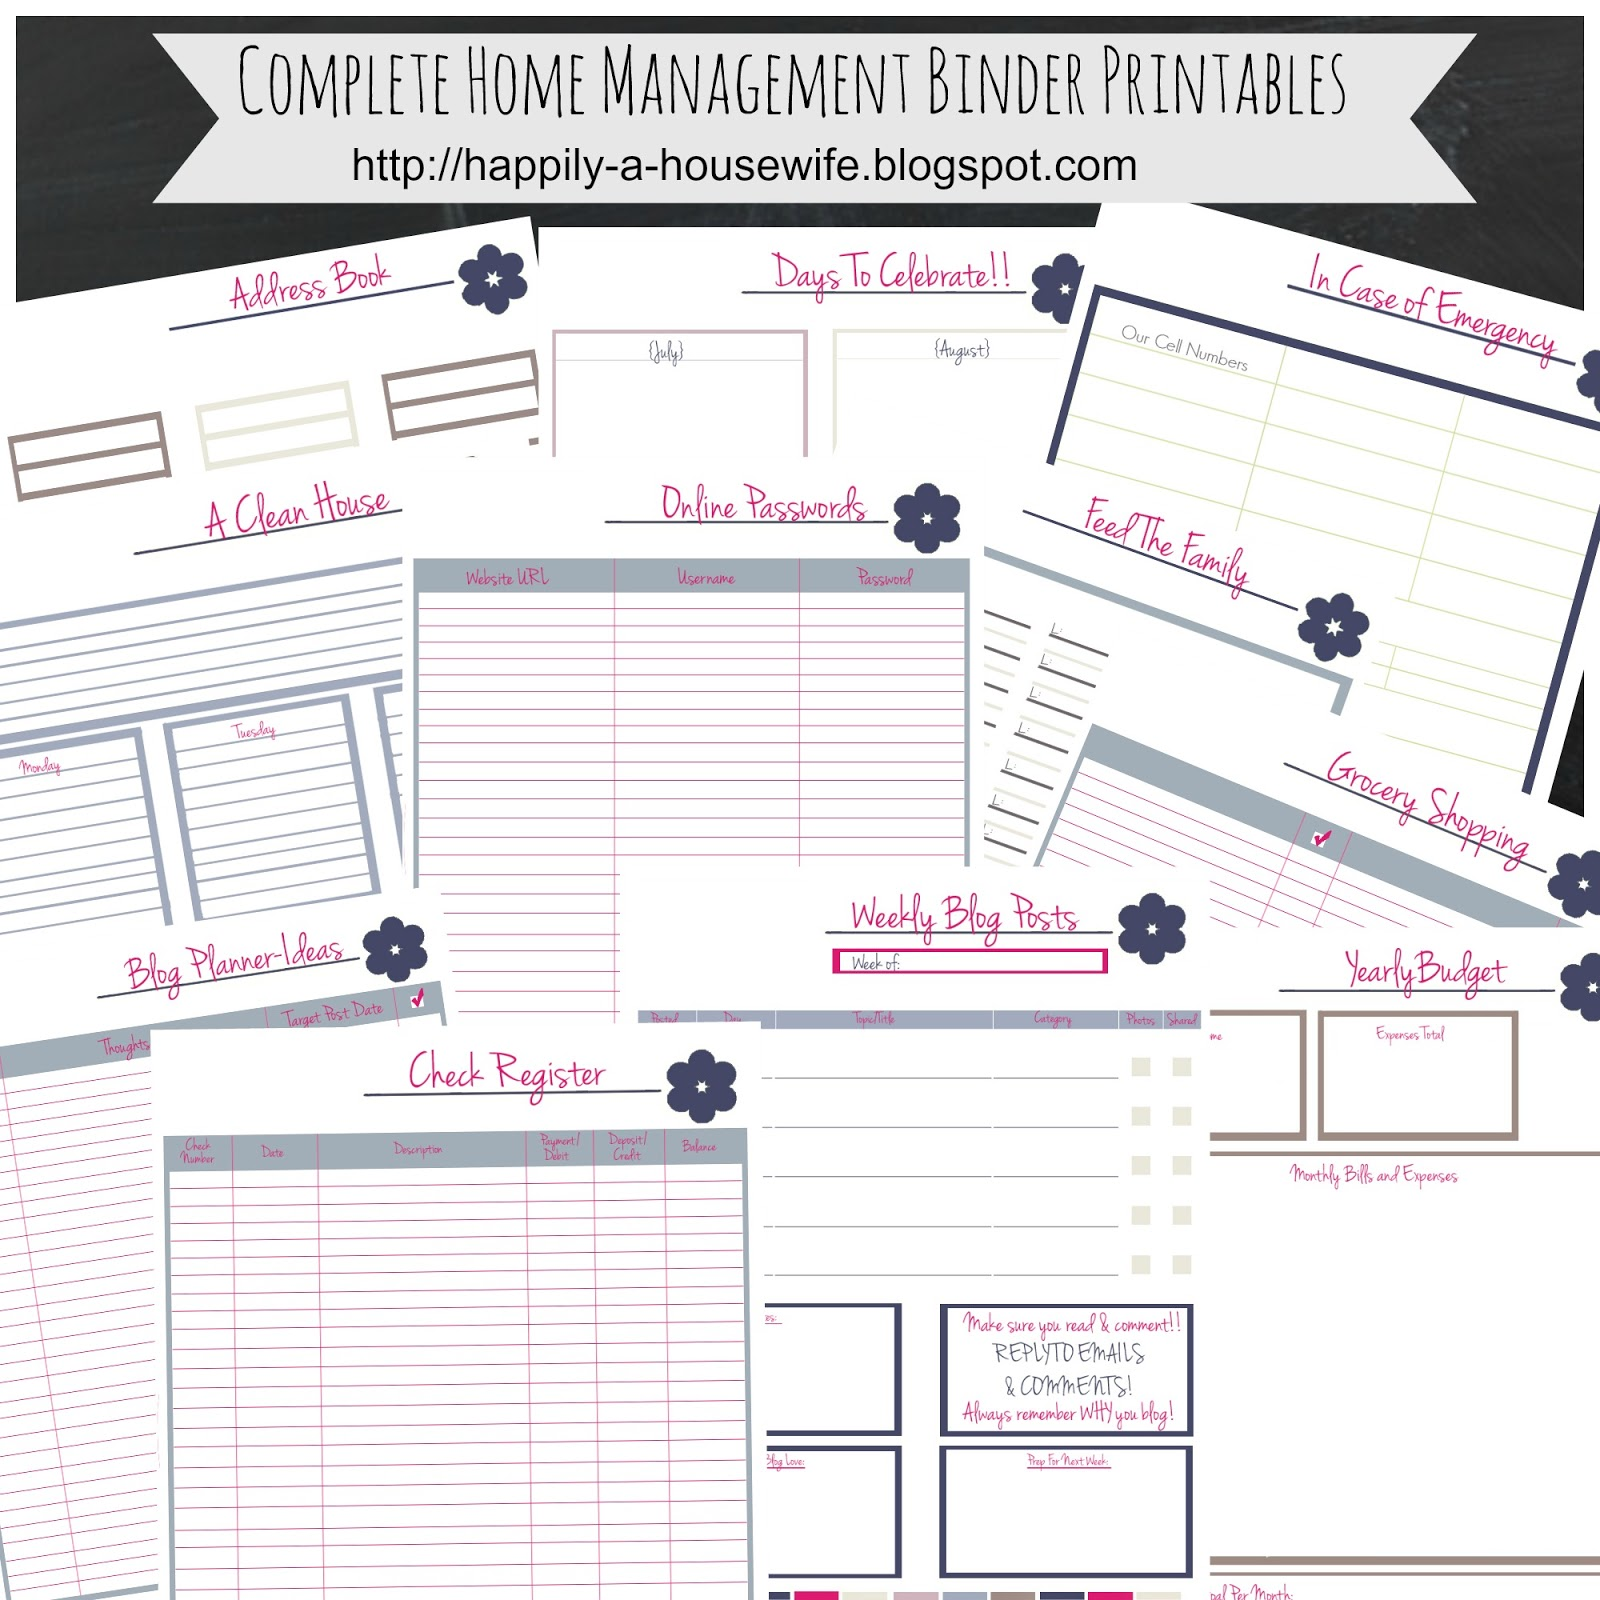 Happily A Housewife Updated Home Management Binder